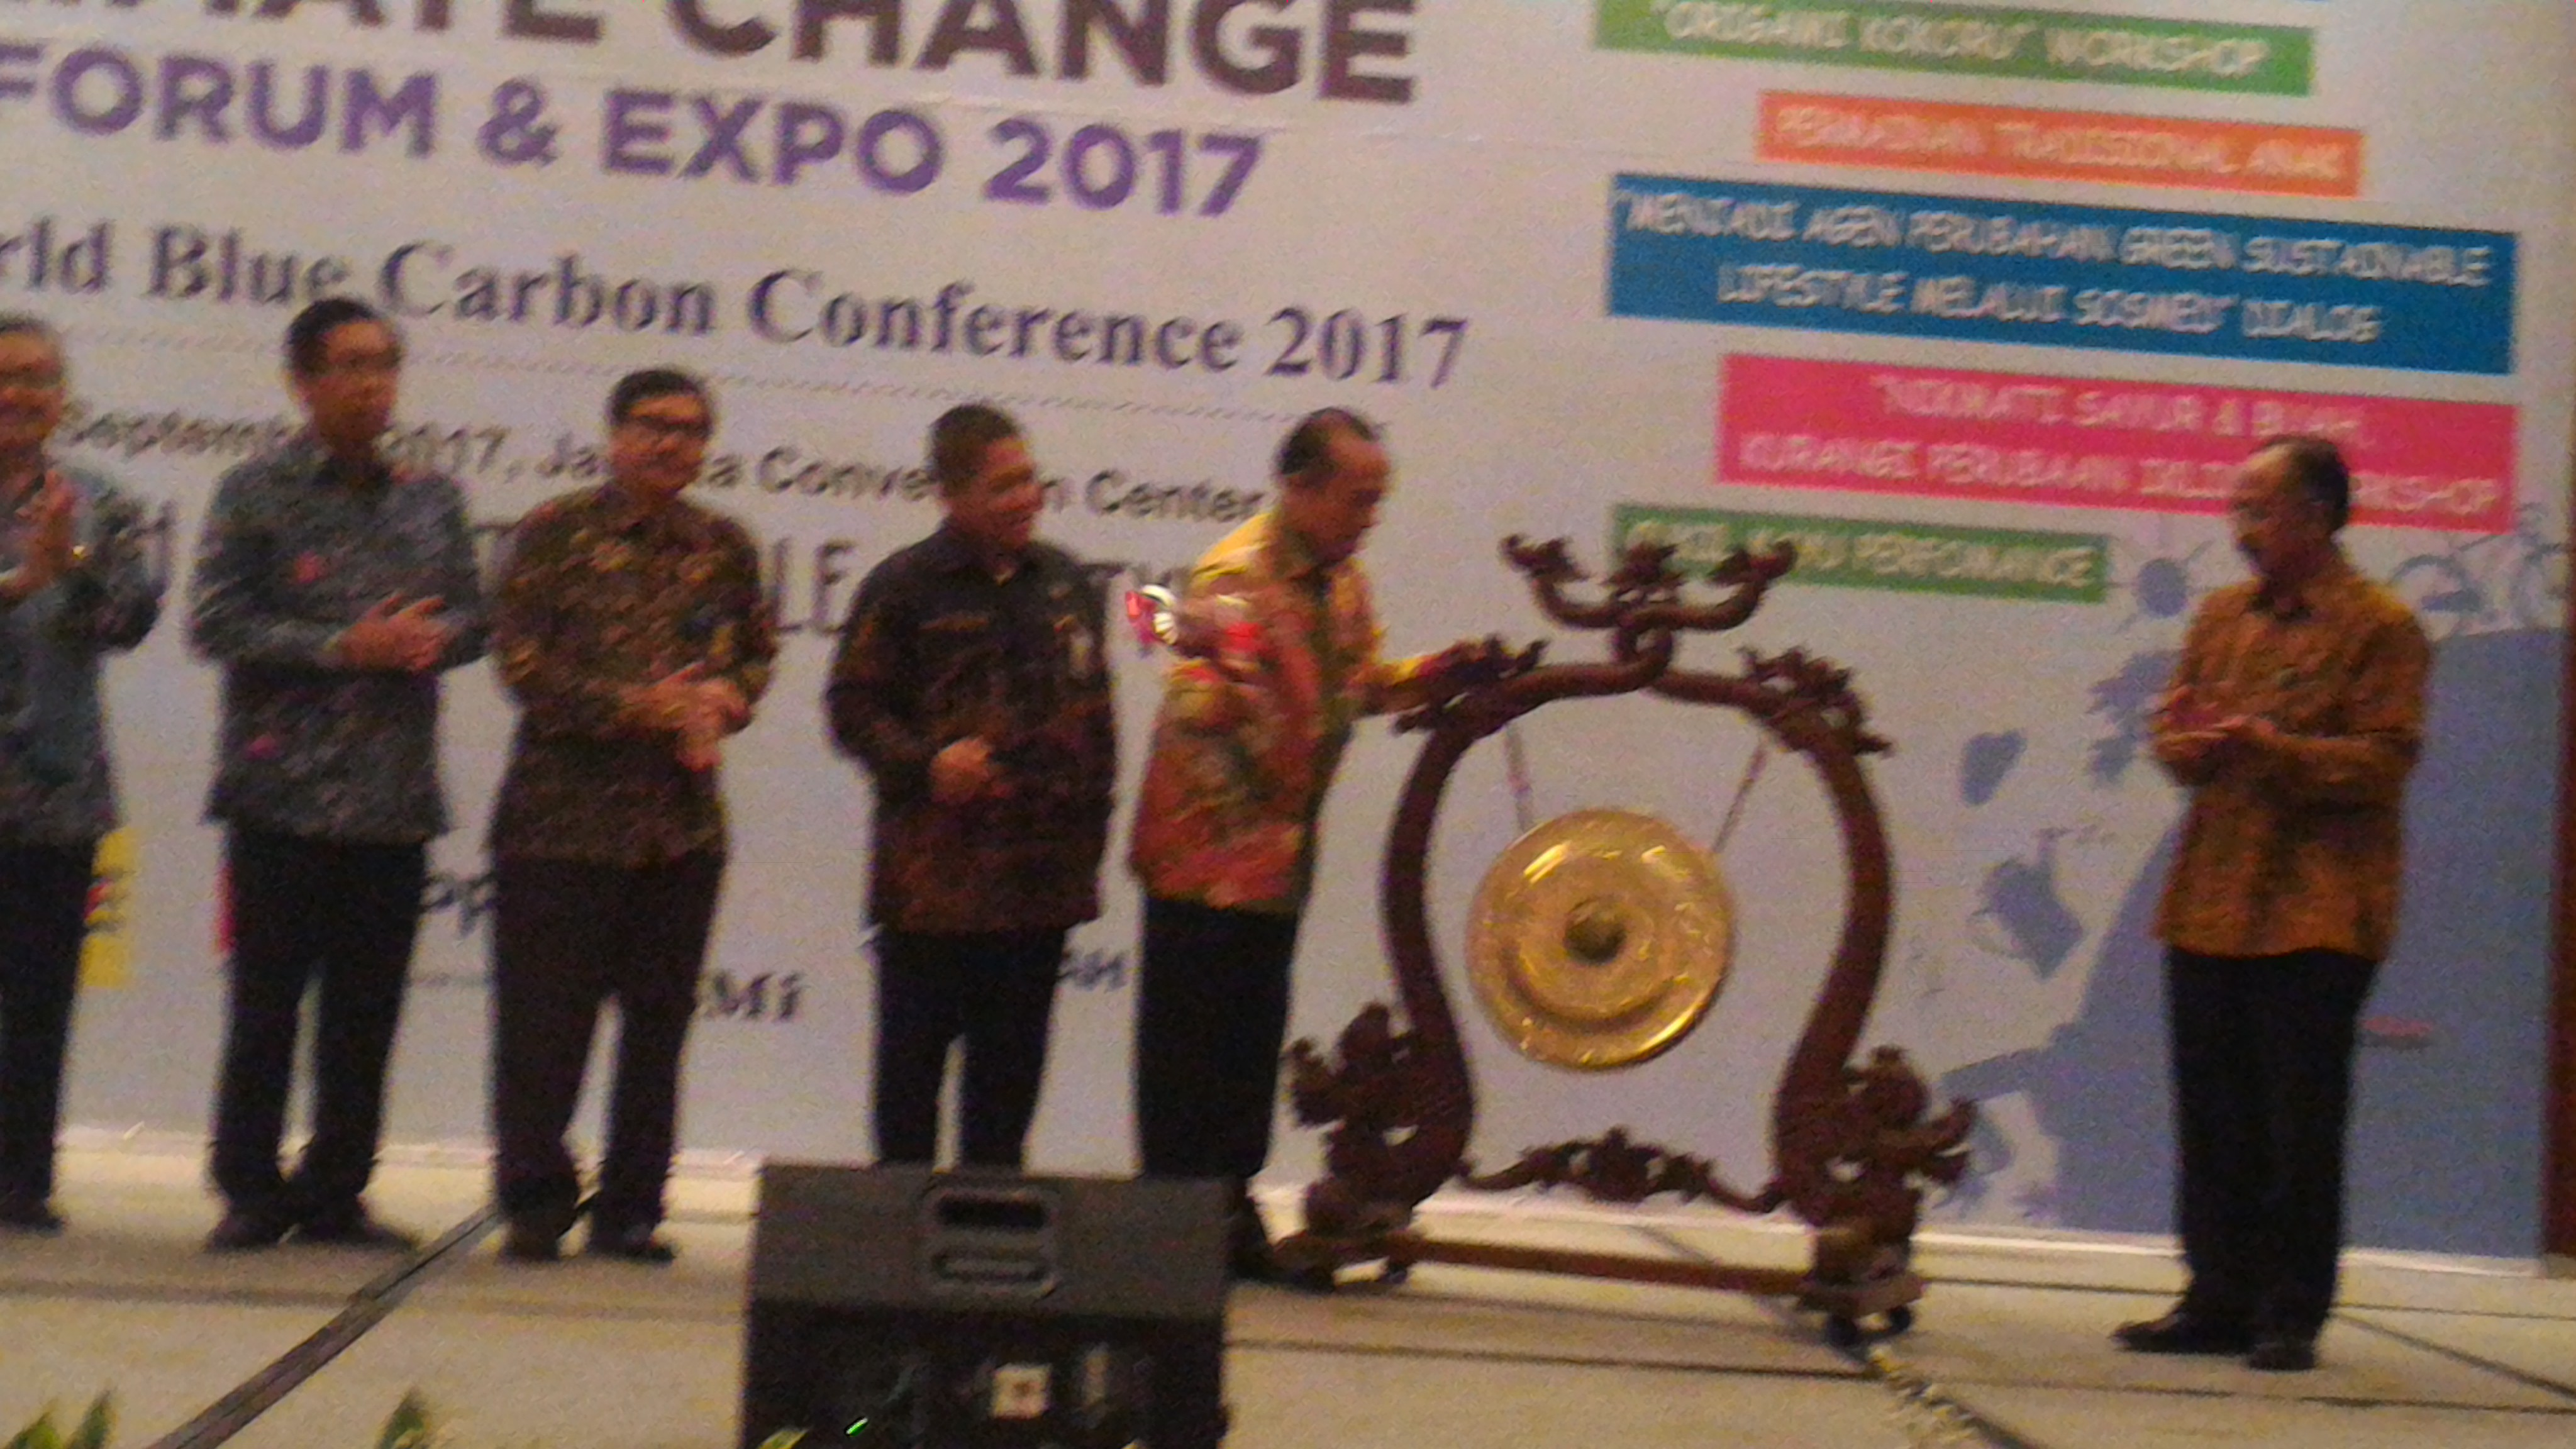 LAMPUNG POST | Indonesia Climate Change Forum & Expo Dibuka